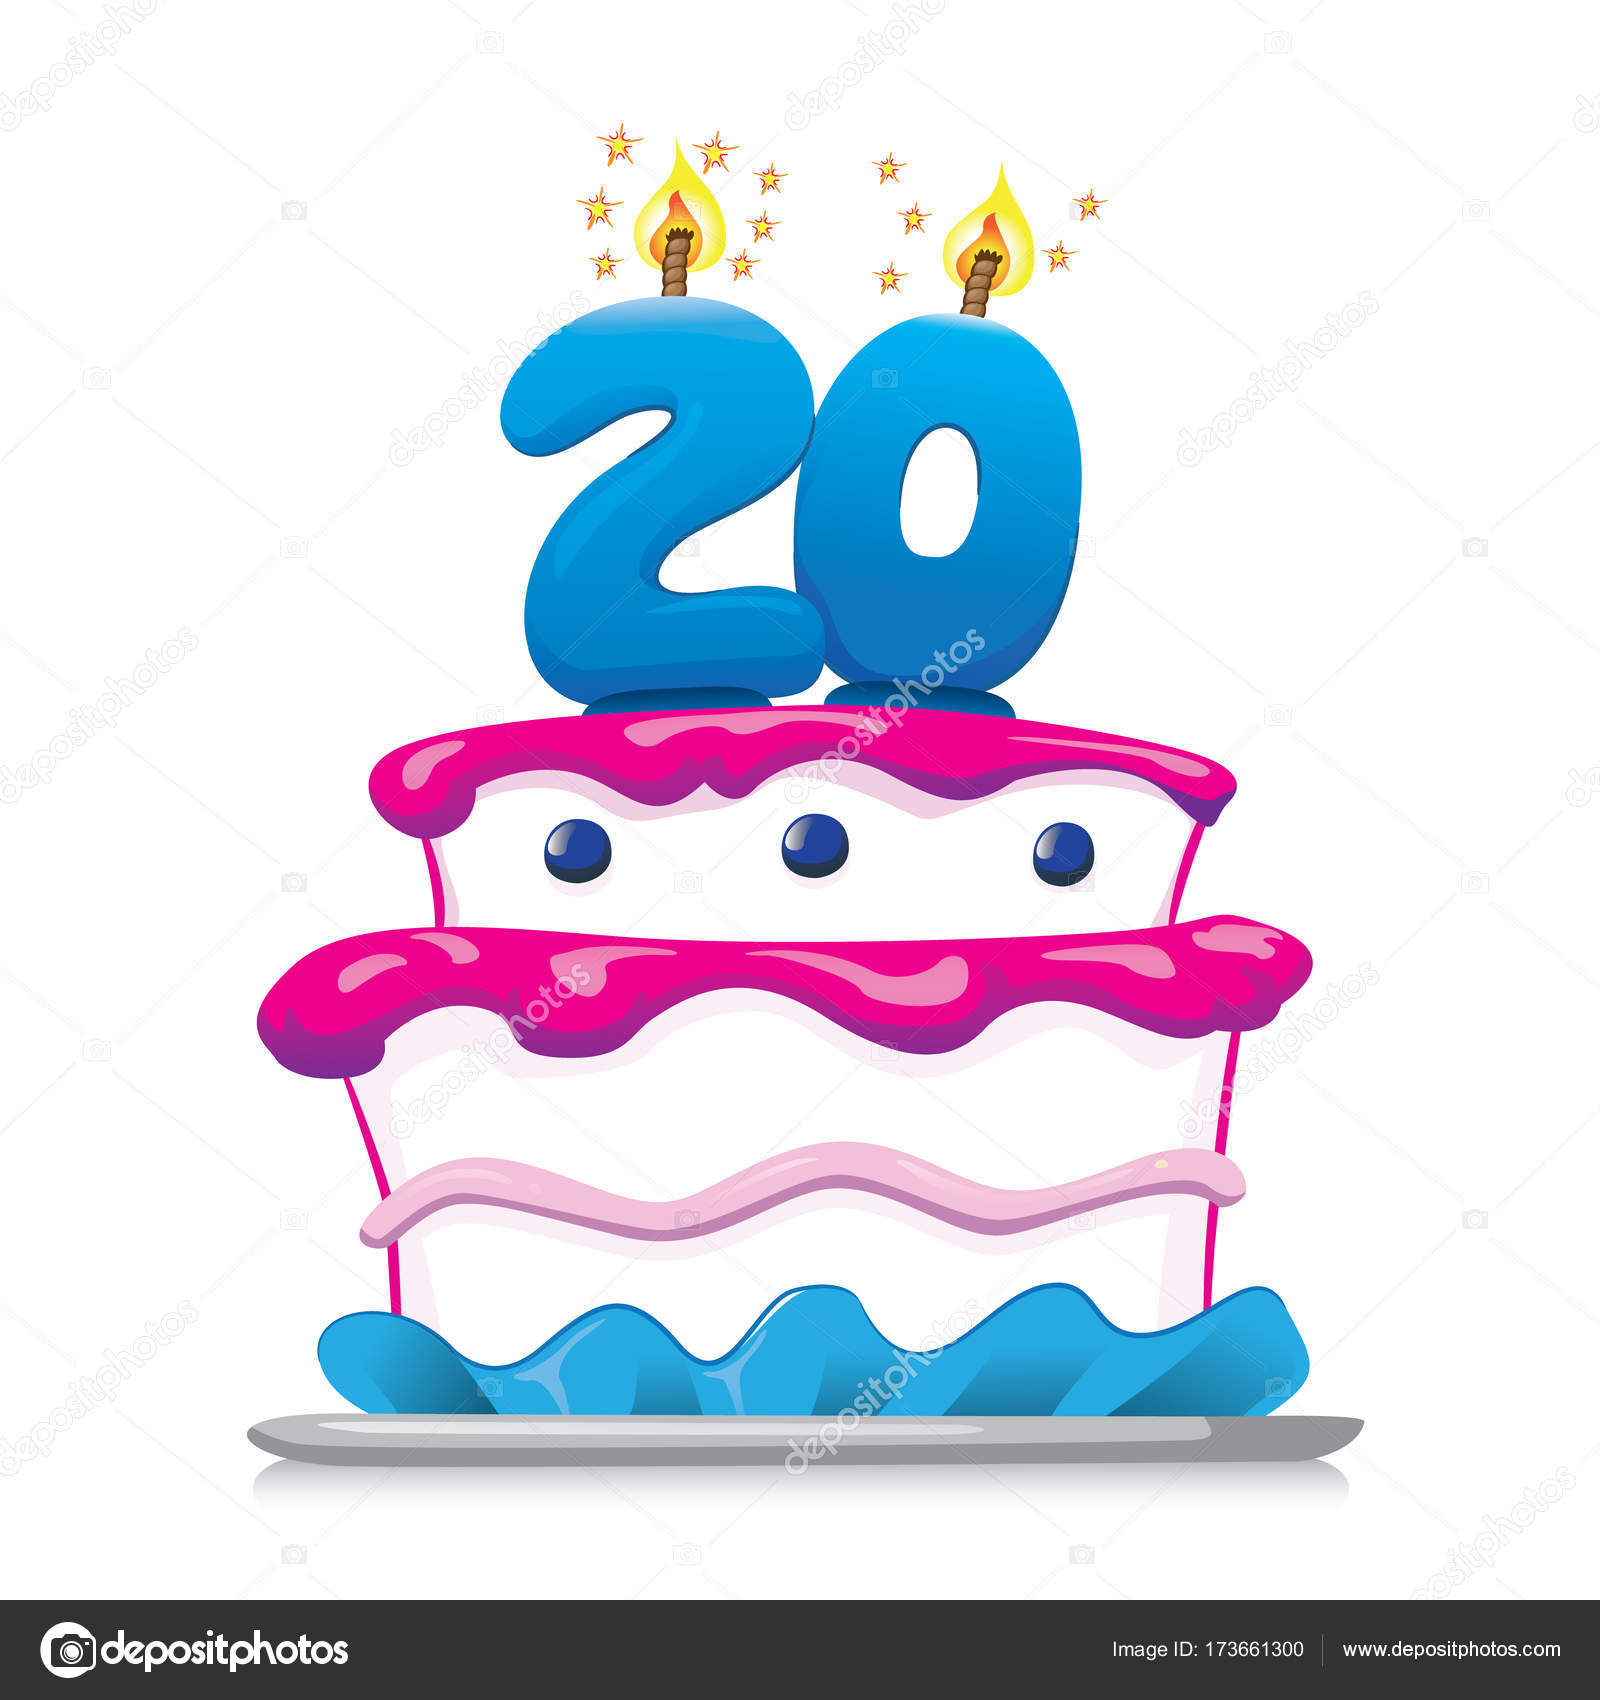 Illustration Of Sweet Food Birthday Cake 20 Years Ideal For Commemorative And Institutional Information